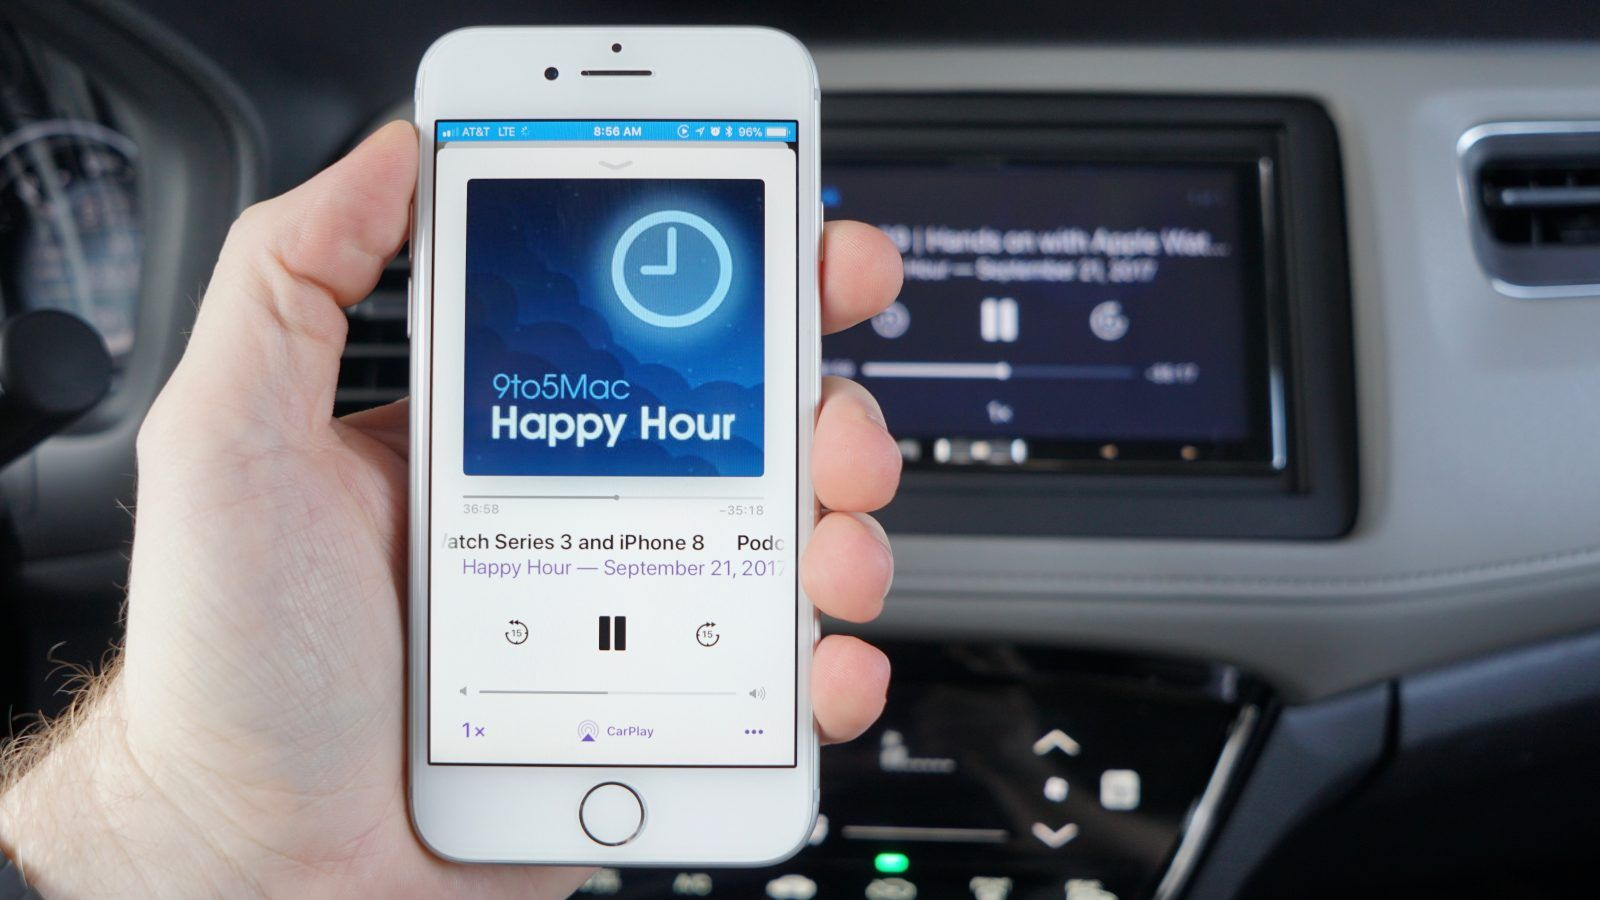 CarPlay, Apple's iPhone feature that brings communication